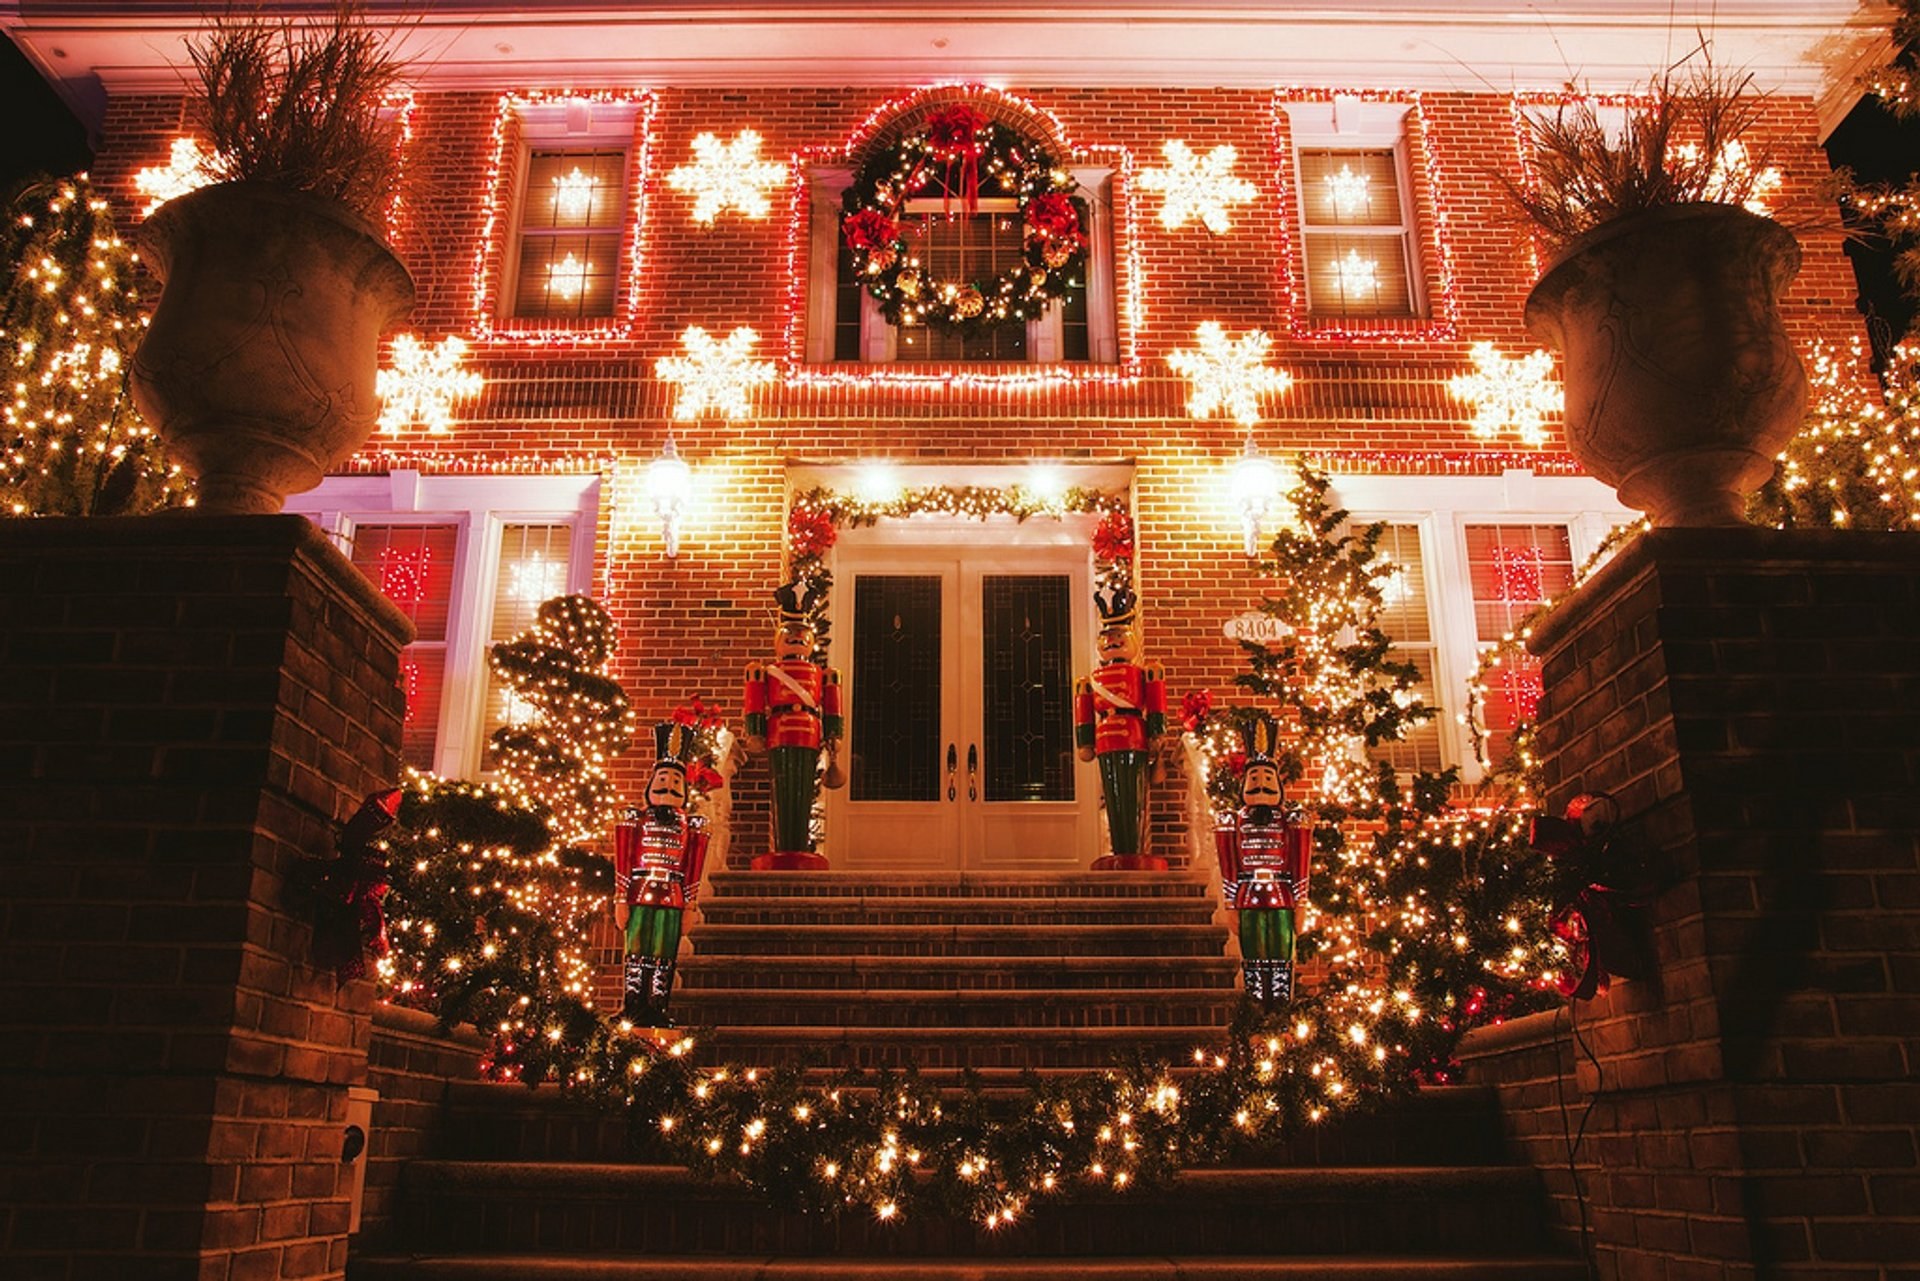 Christmas Lights In New York 2019 Christmas Lights 2019 2020 in New York   Dates & Map